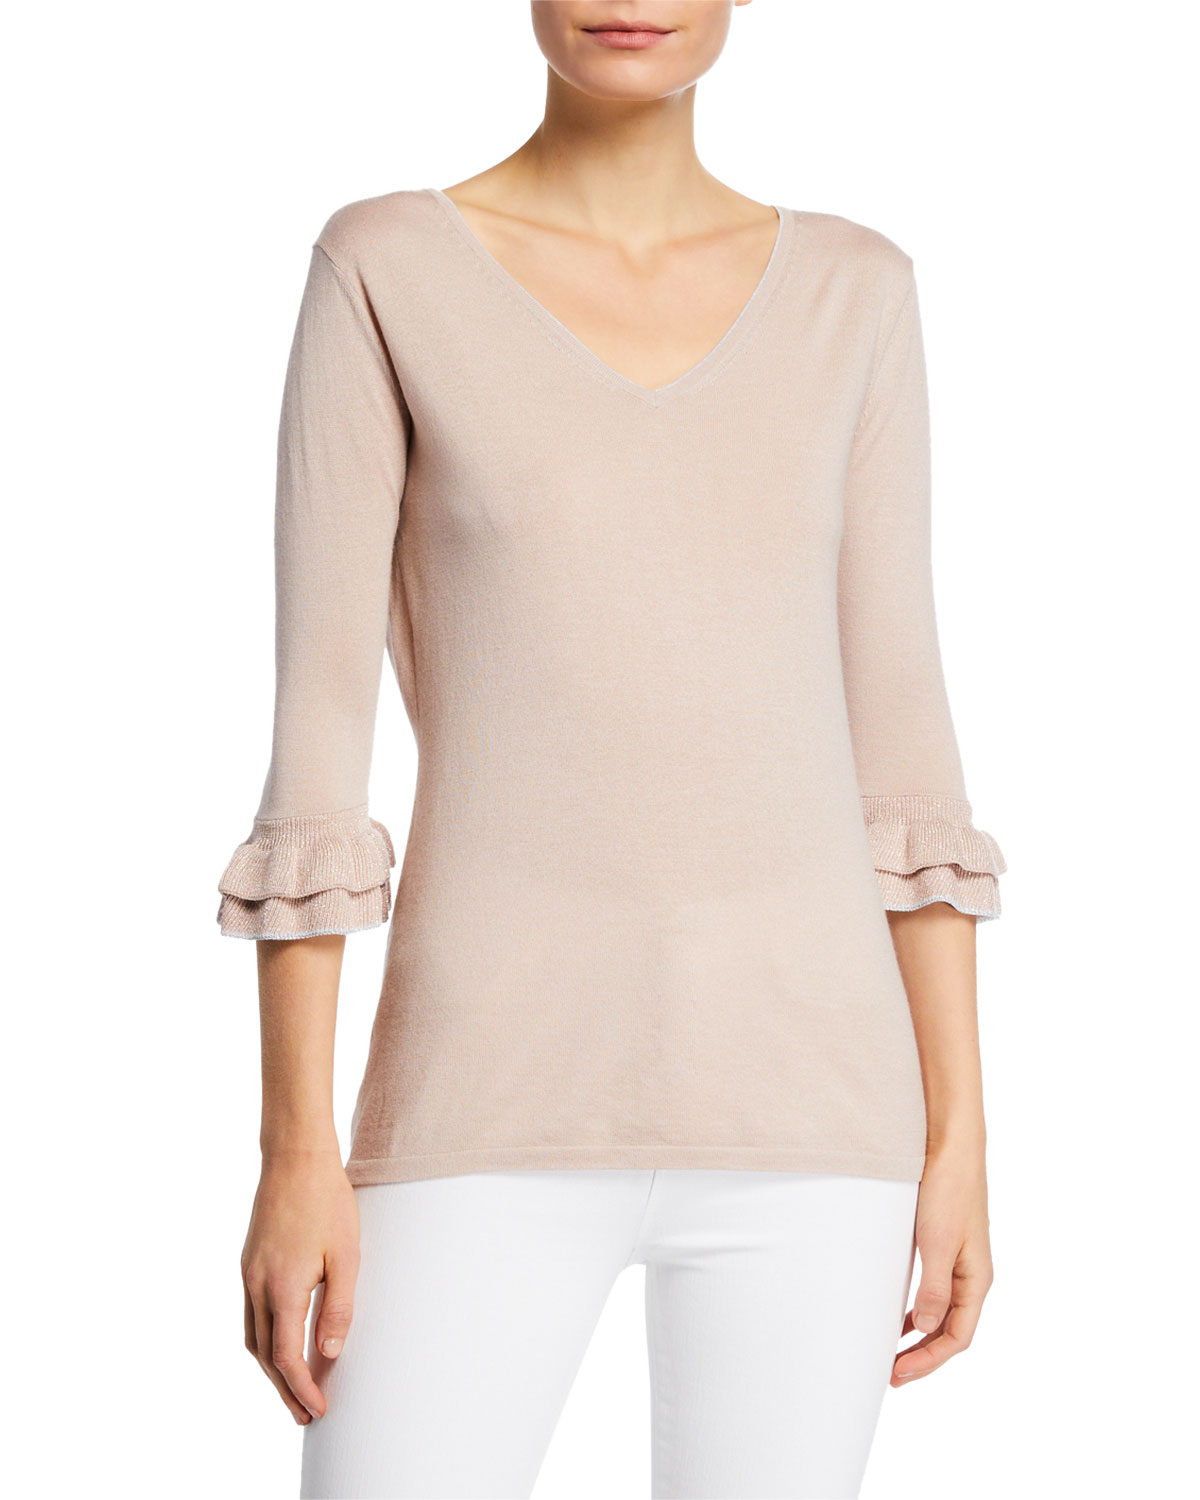 Neiman Marcus Cashmere Collection Cashmere Boatneck: Neiman Marcus Cashmere Collection Cashmere & Metallic Trim